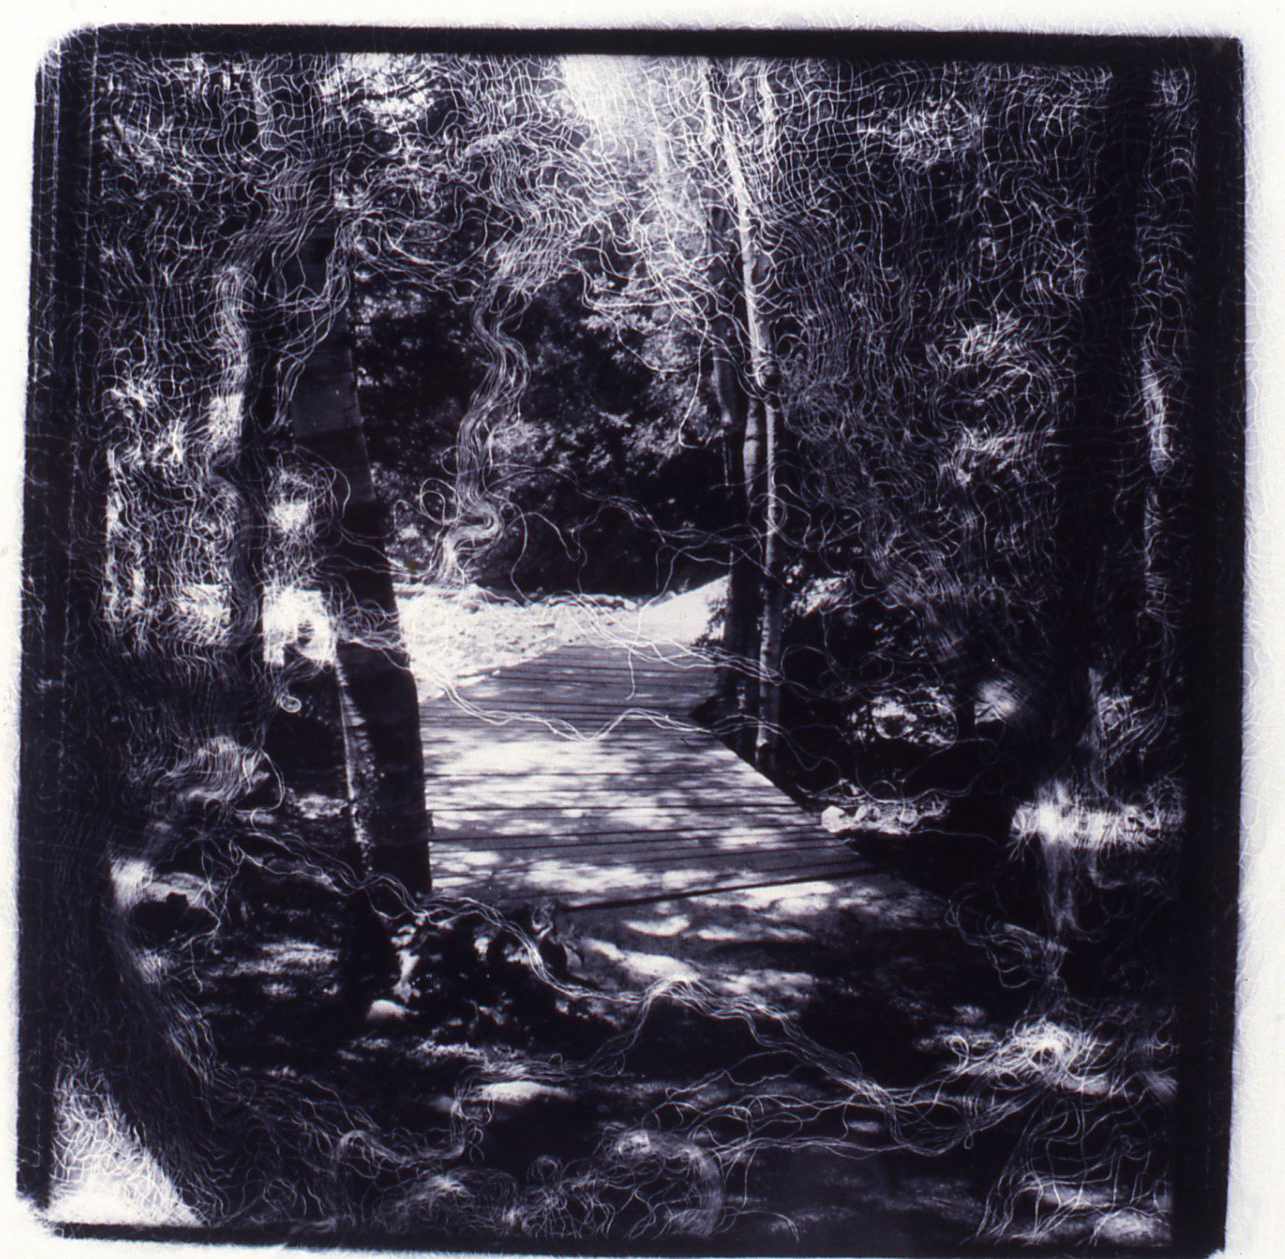 Passages Wooden Path  , Gelatin Silver print, 10x10 inches, 1989-1990, unique print